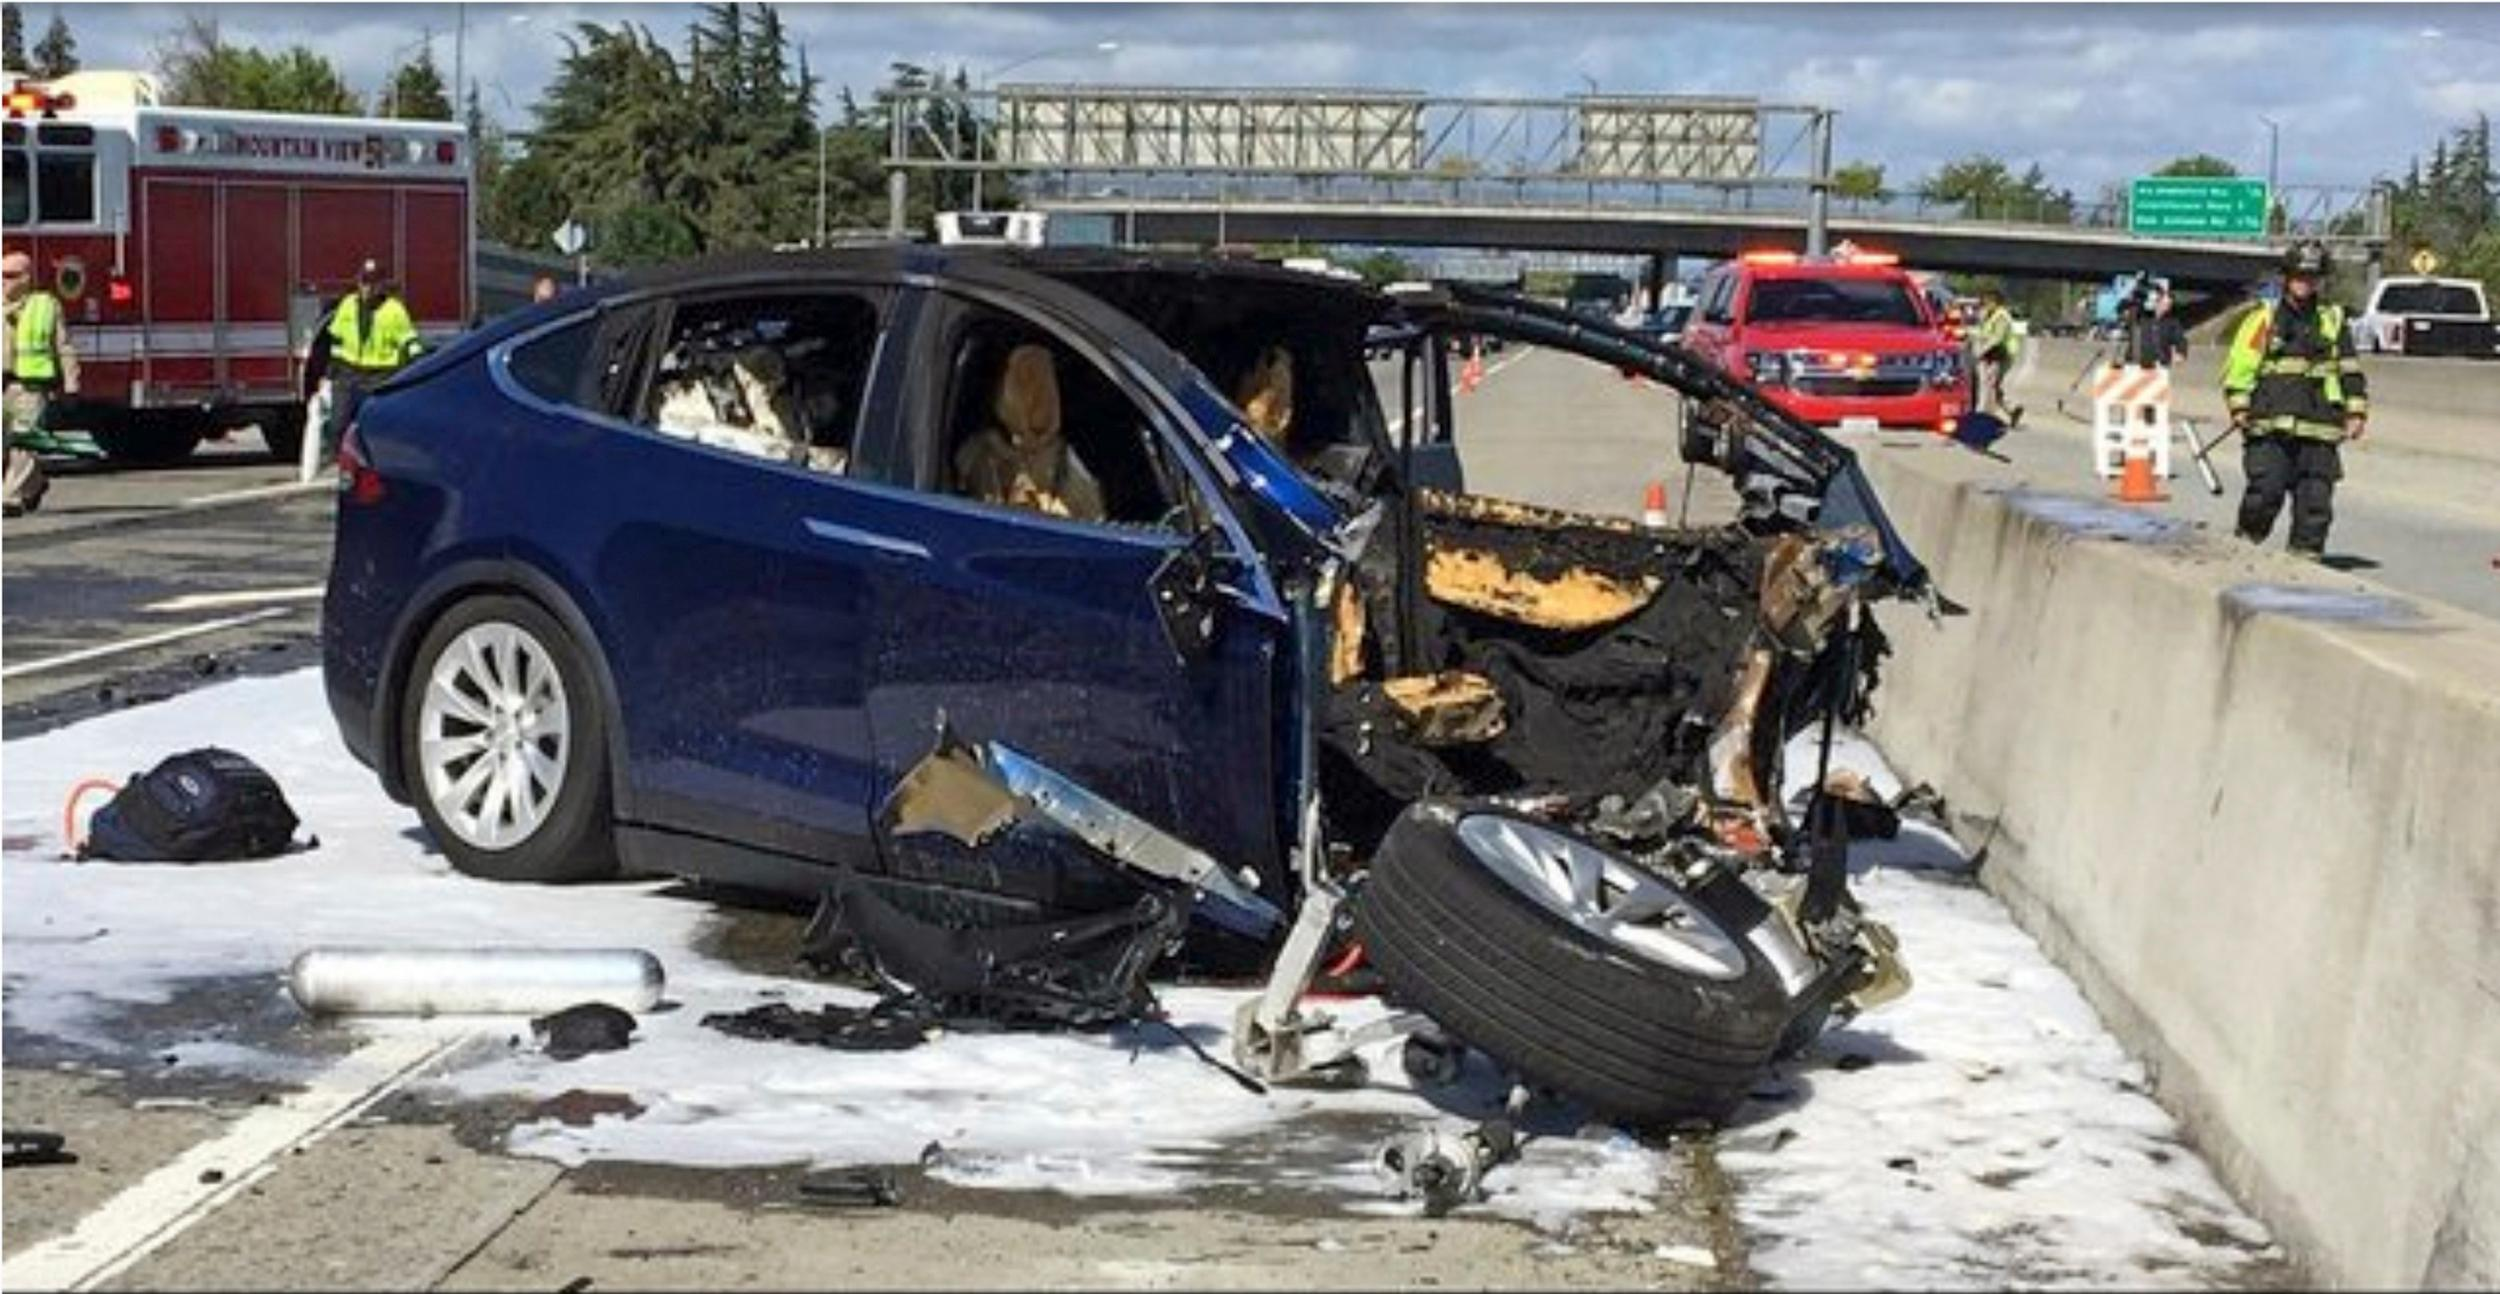 Tesla Autopilot crash driver killed after playing video games, investigation reveals